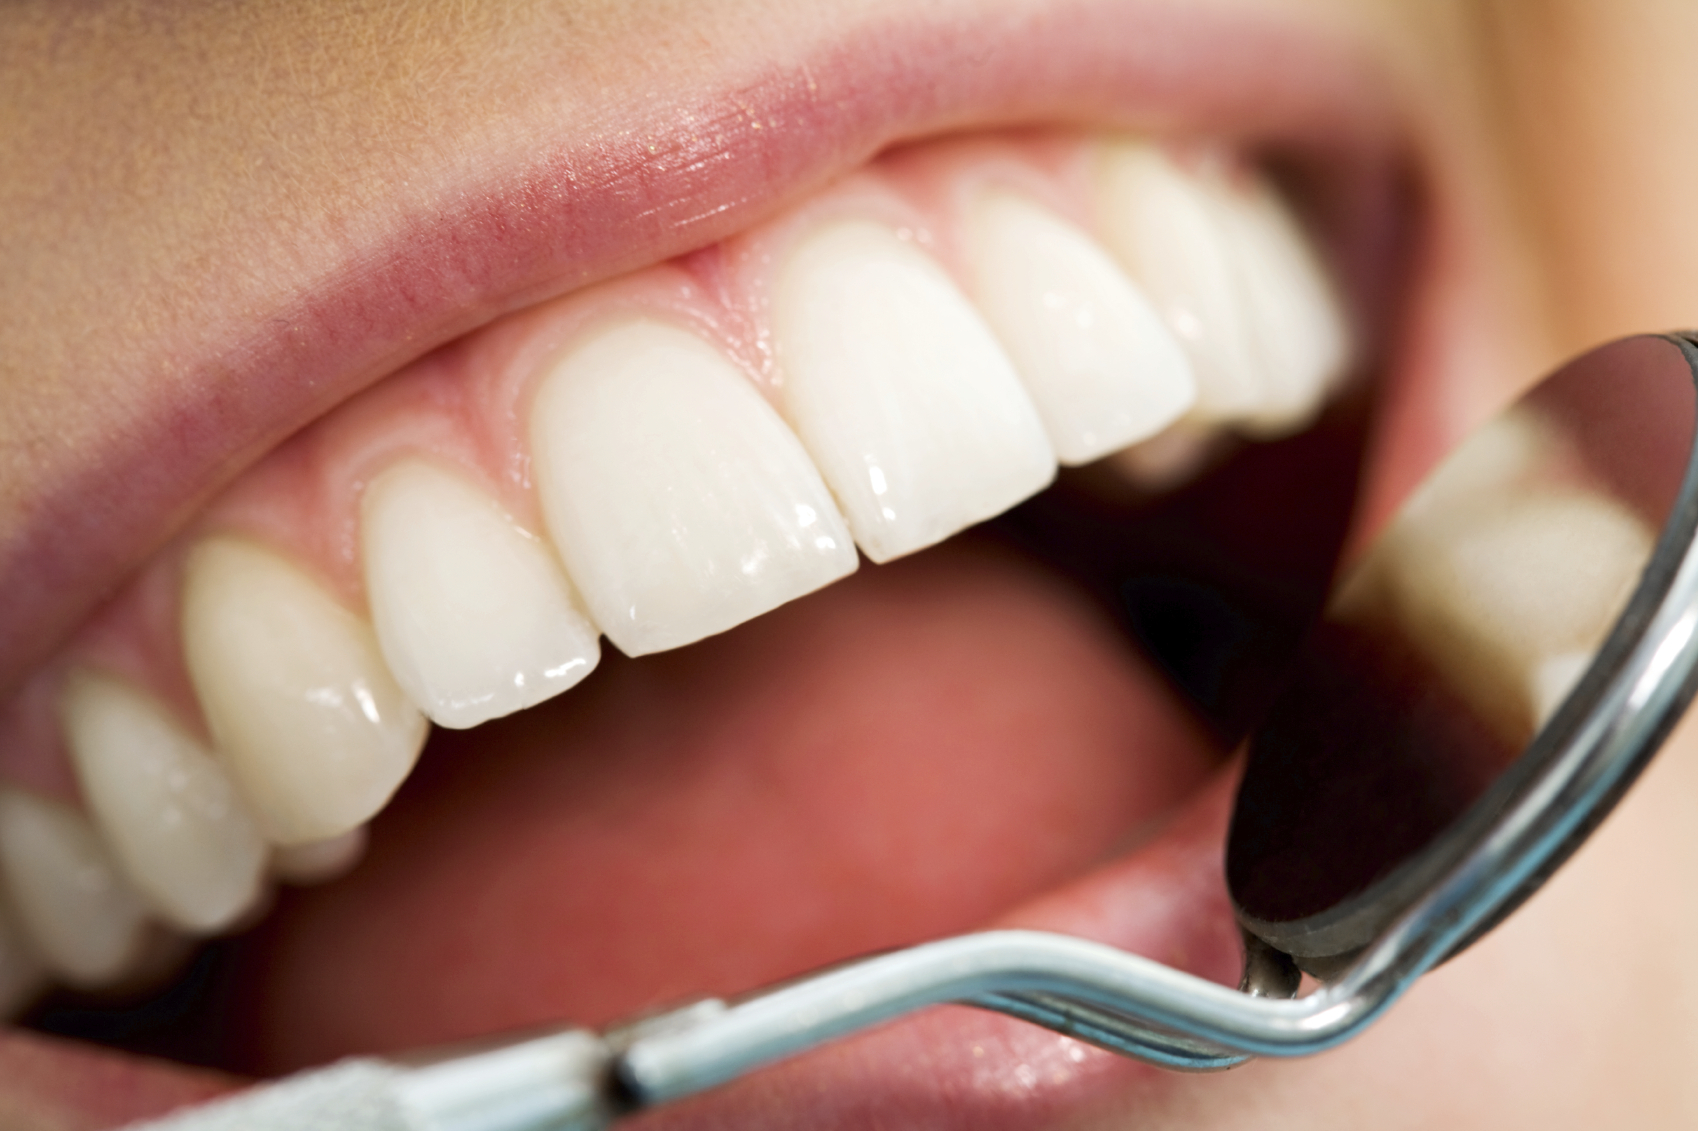 Family Discount Dental Plans - Secrets That Will Save You Money